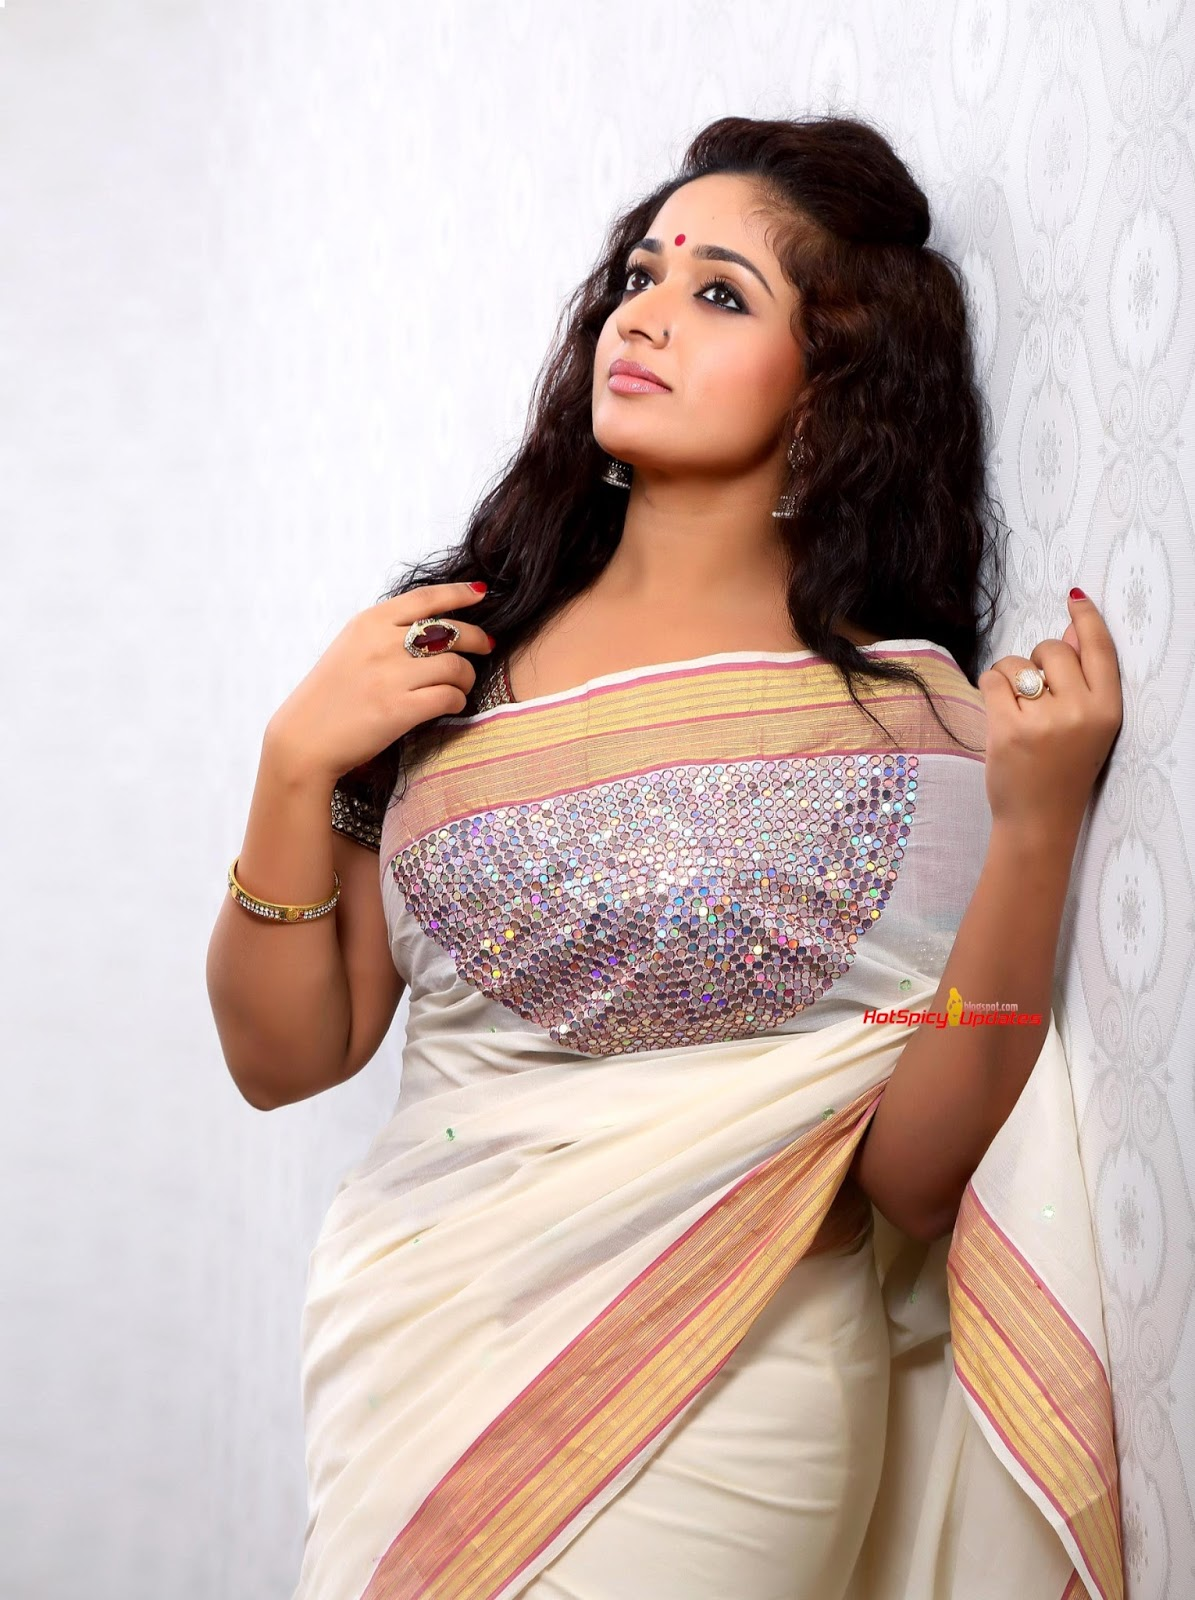 Kavya Madhavan Naked Photos Sandy Andy -3787